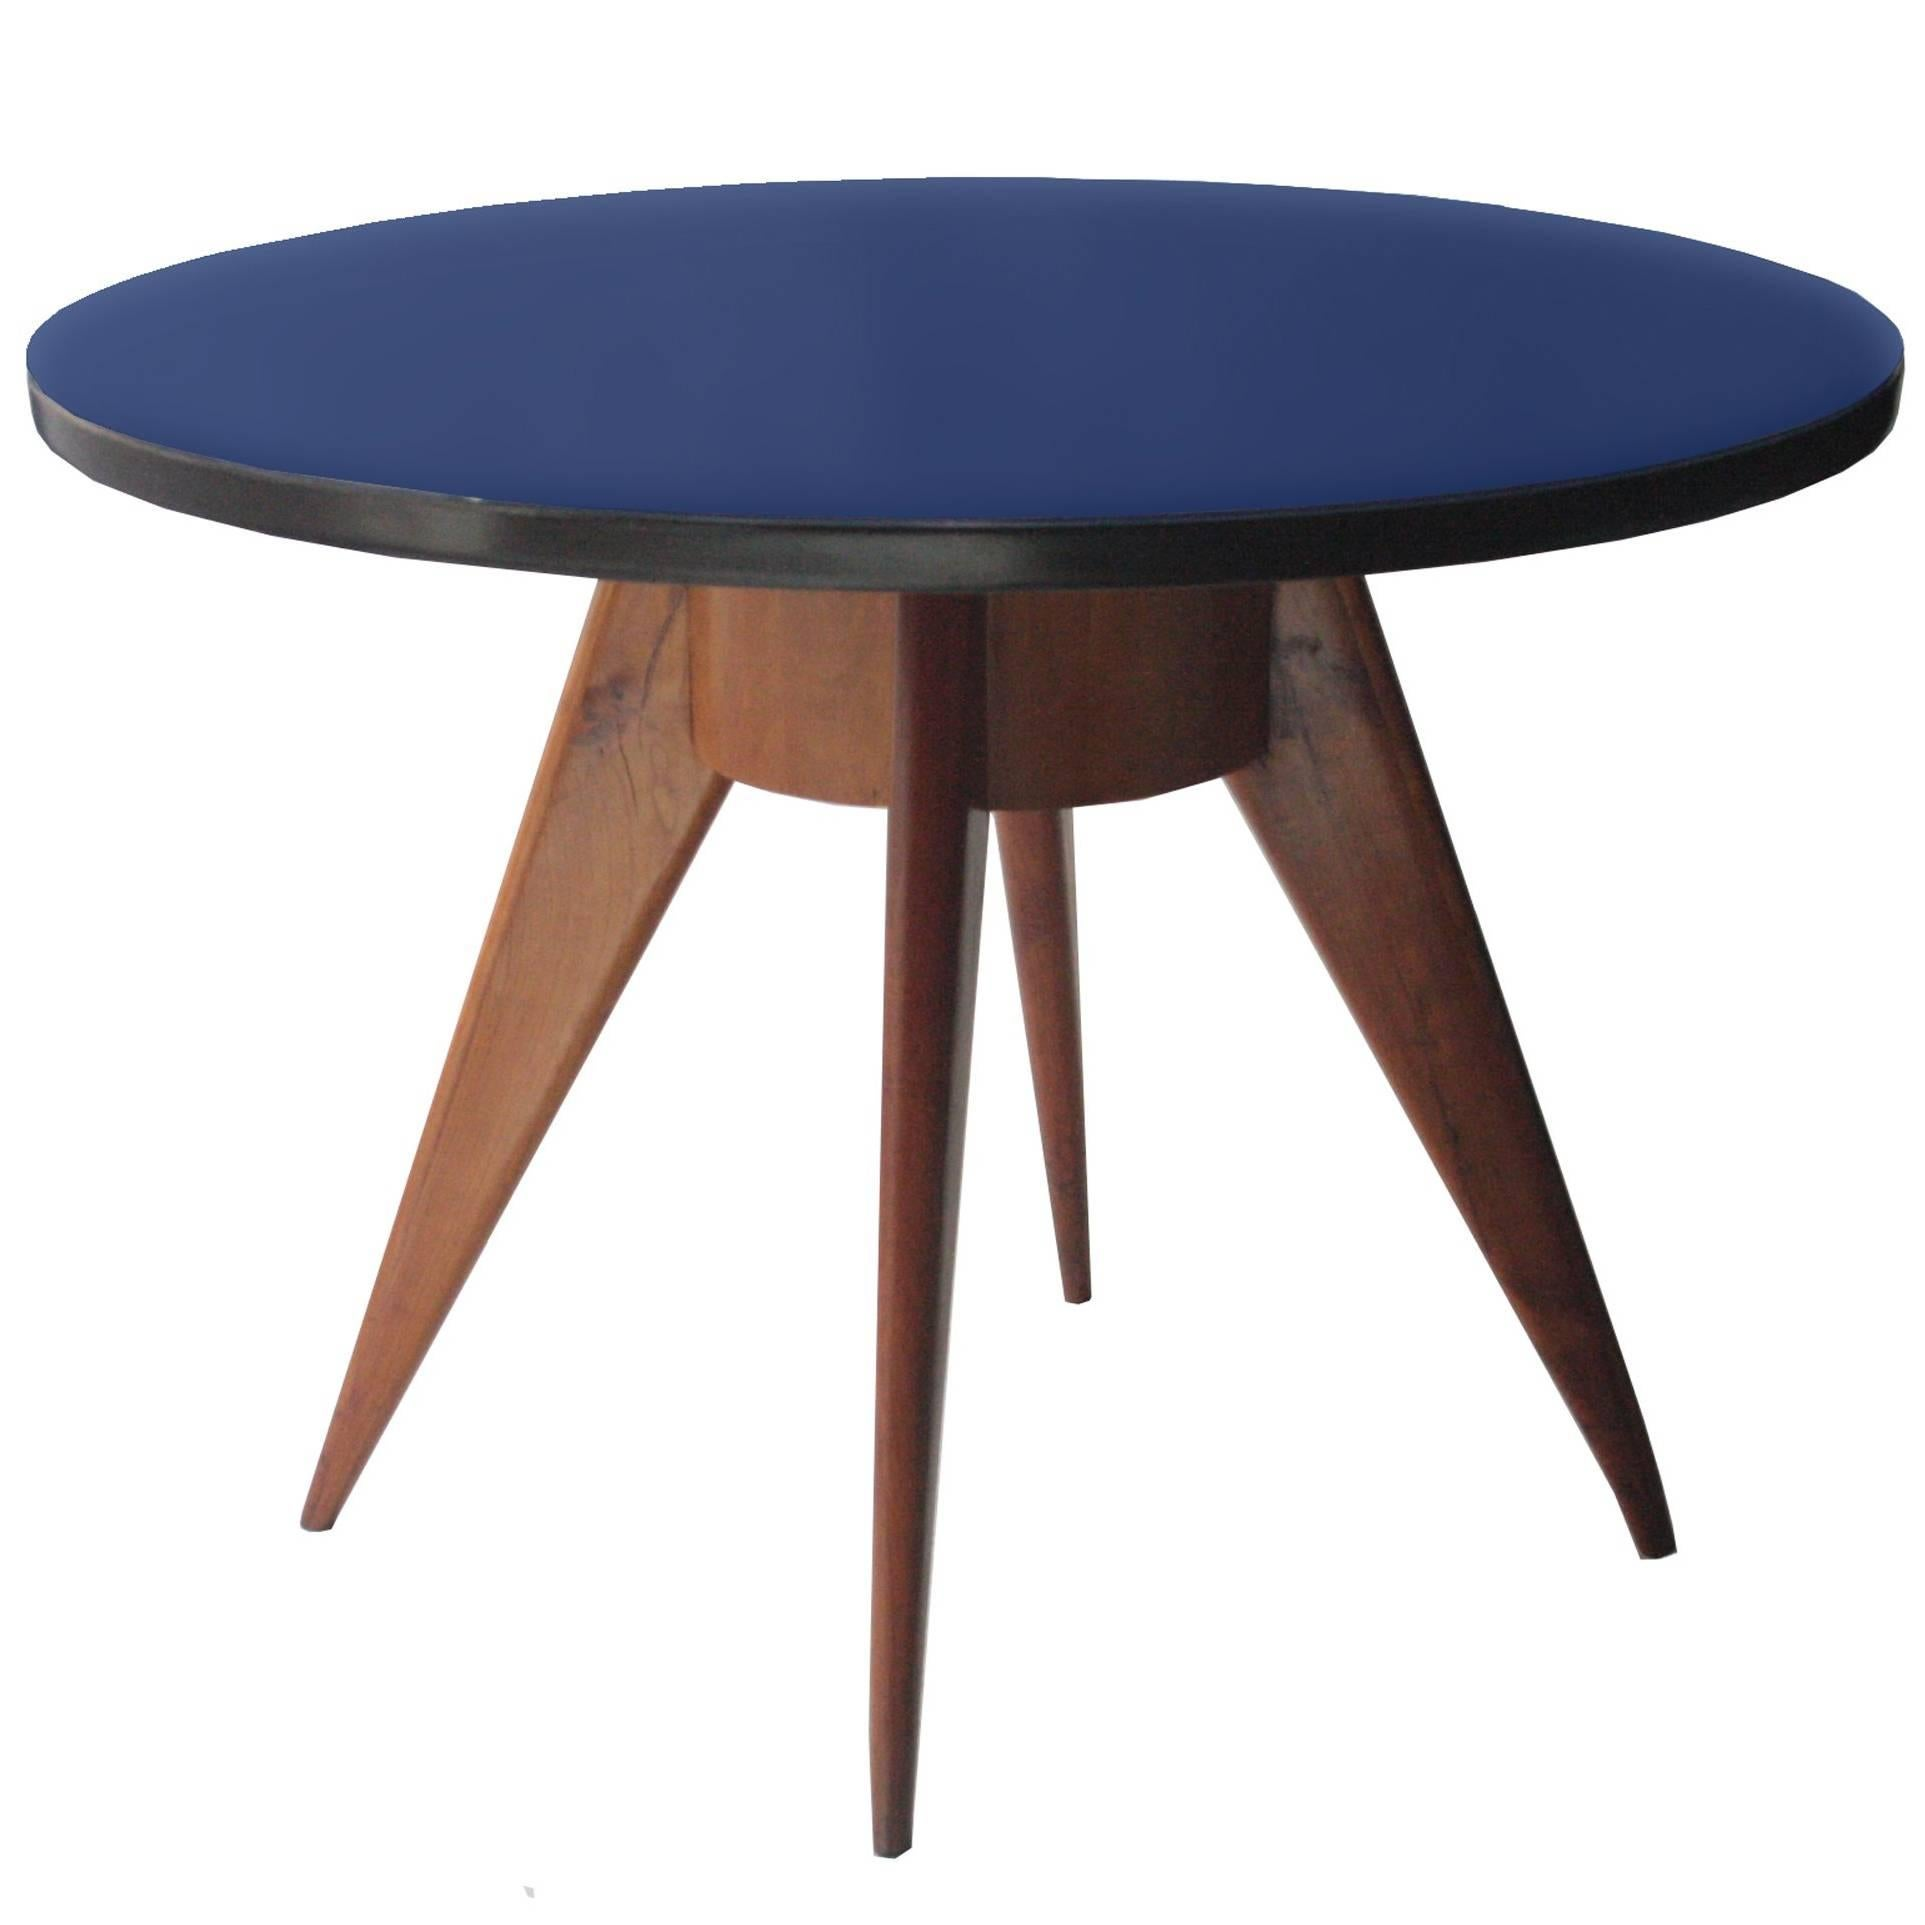 Beautiful Round Dining Table With Ashwood Structure, Blue Glass Top Klein, Italy, 1950  For